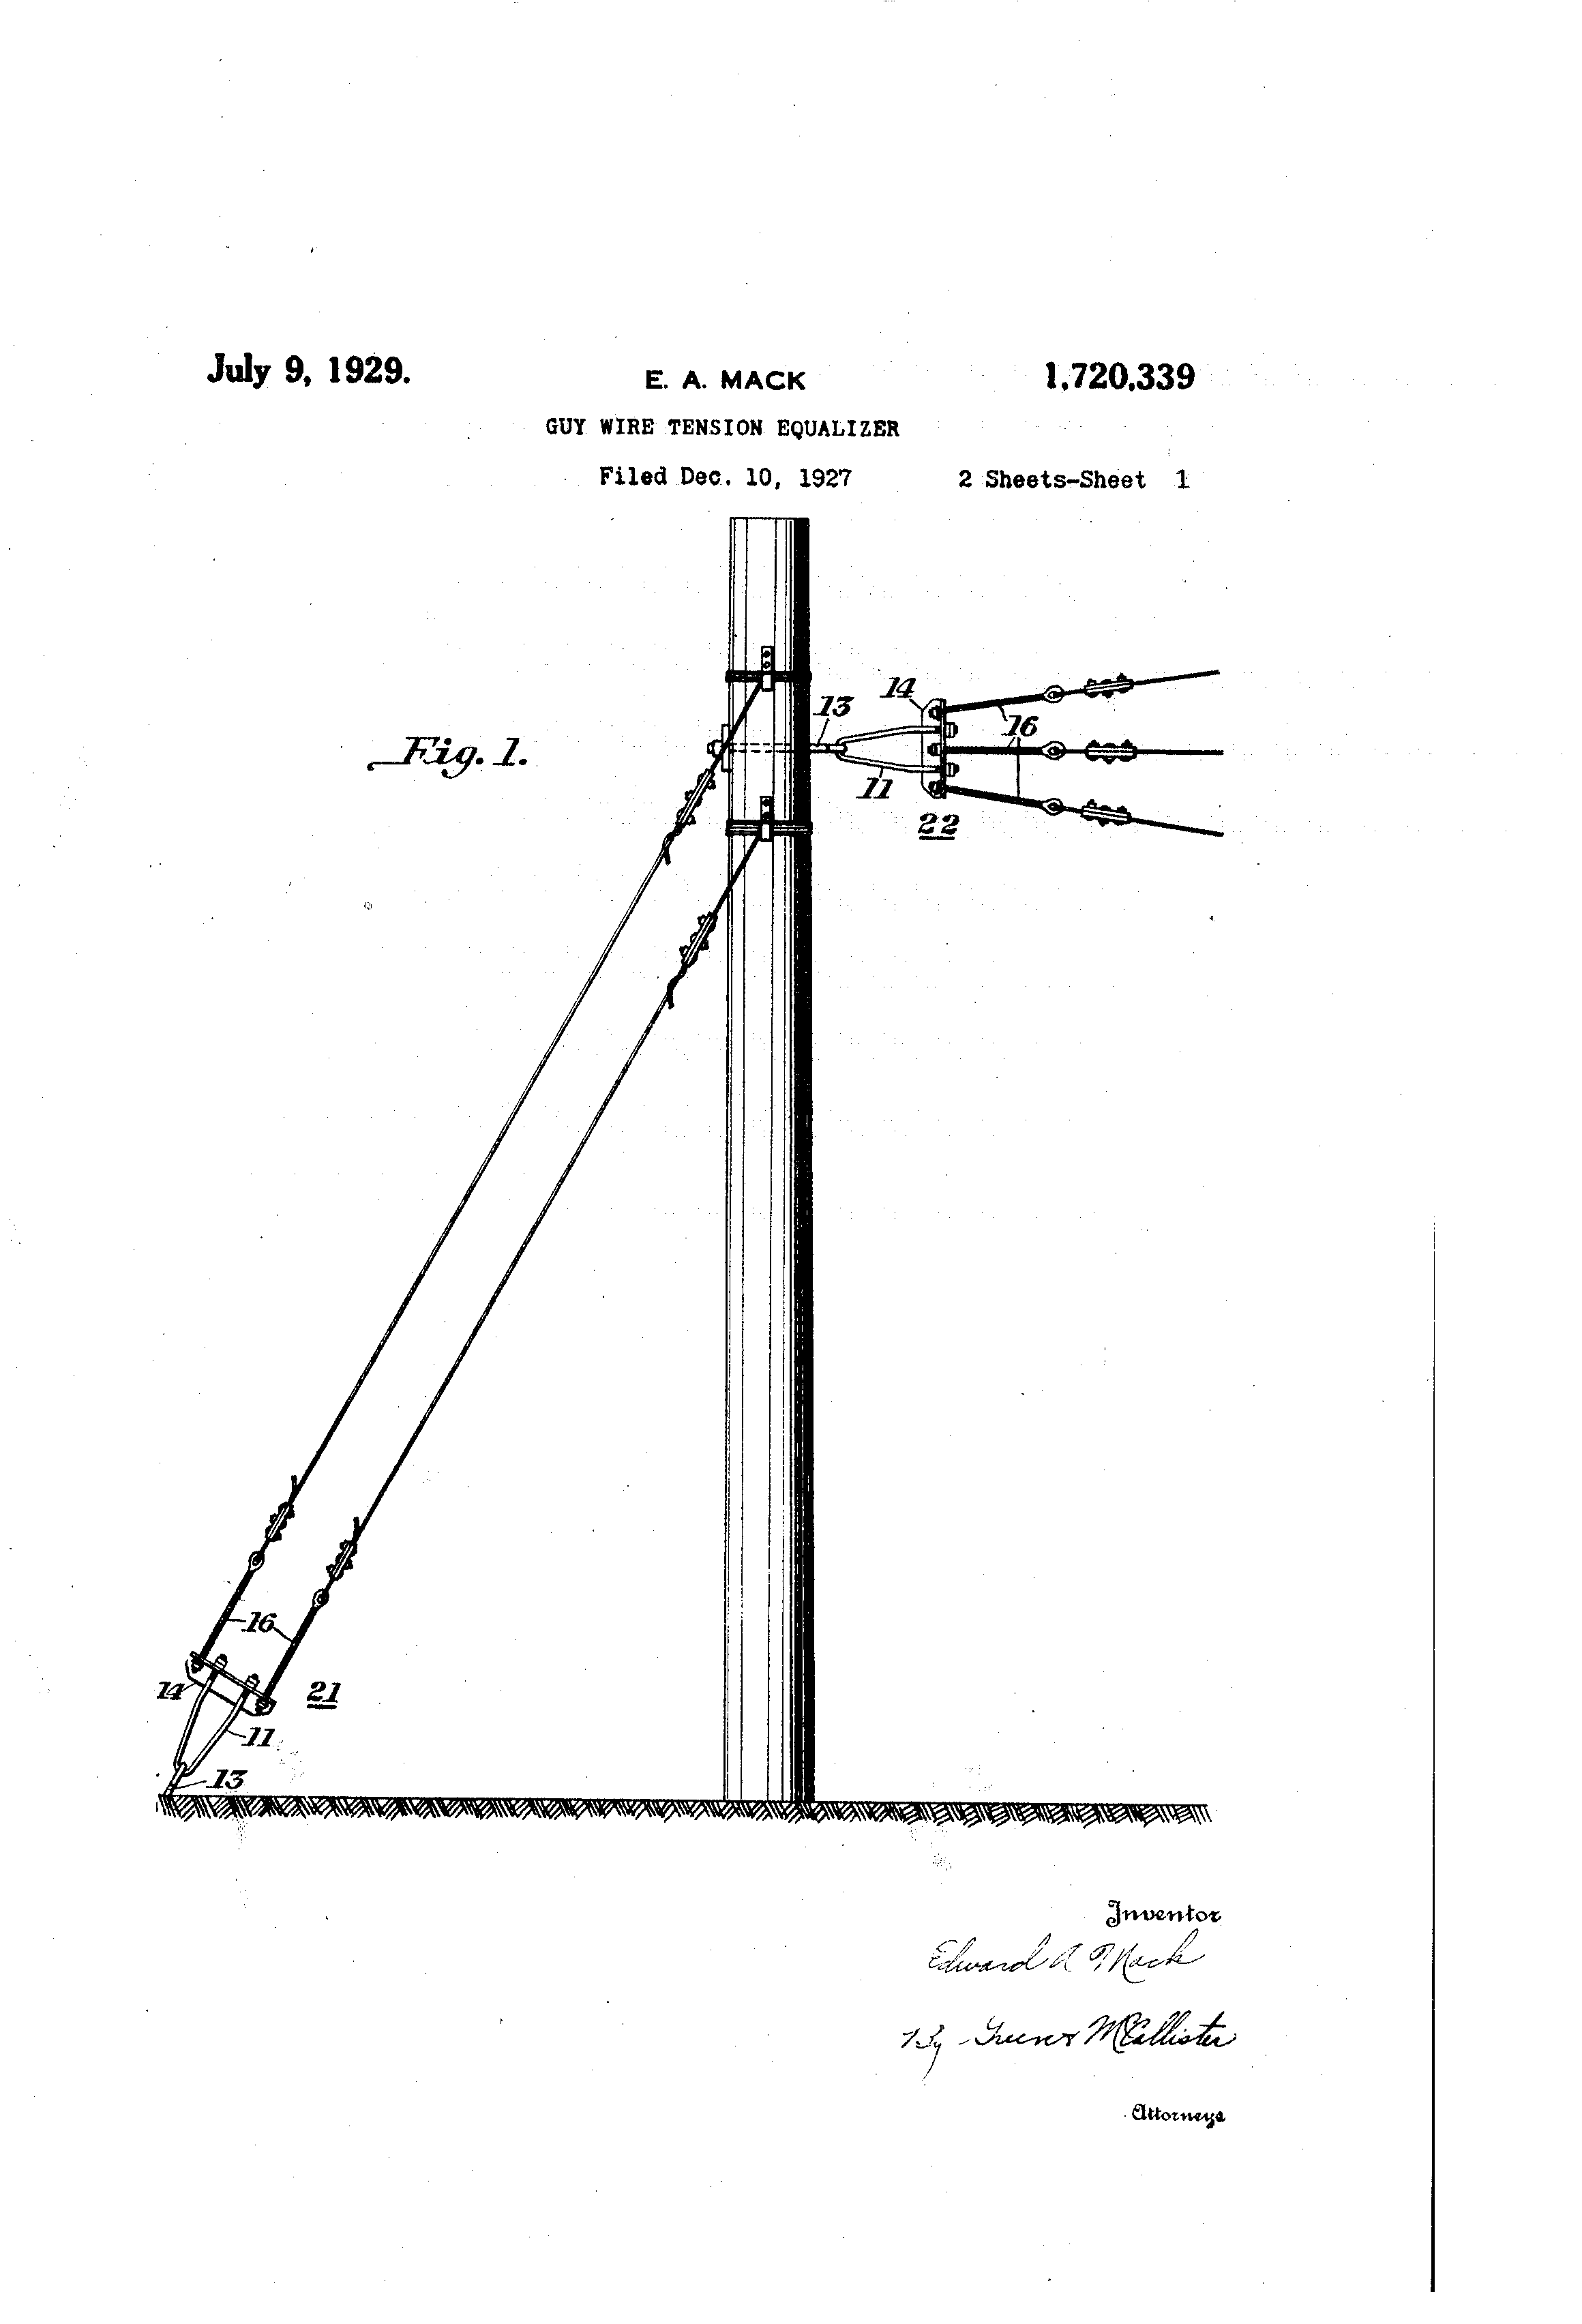 Unique Span Guy Wire Image - Wiring Schematics and Diagrams Pictures ...